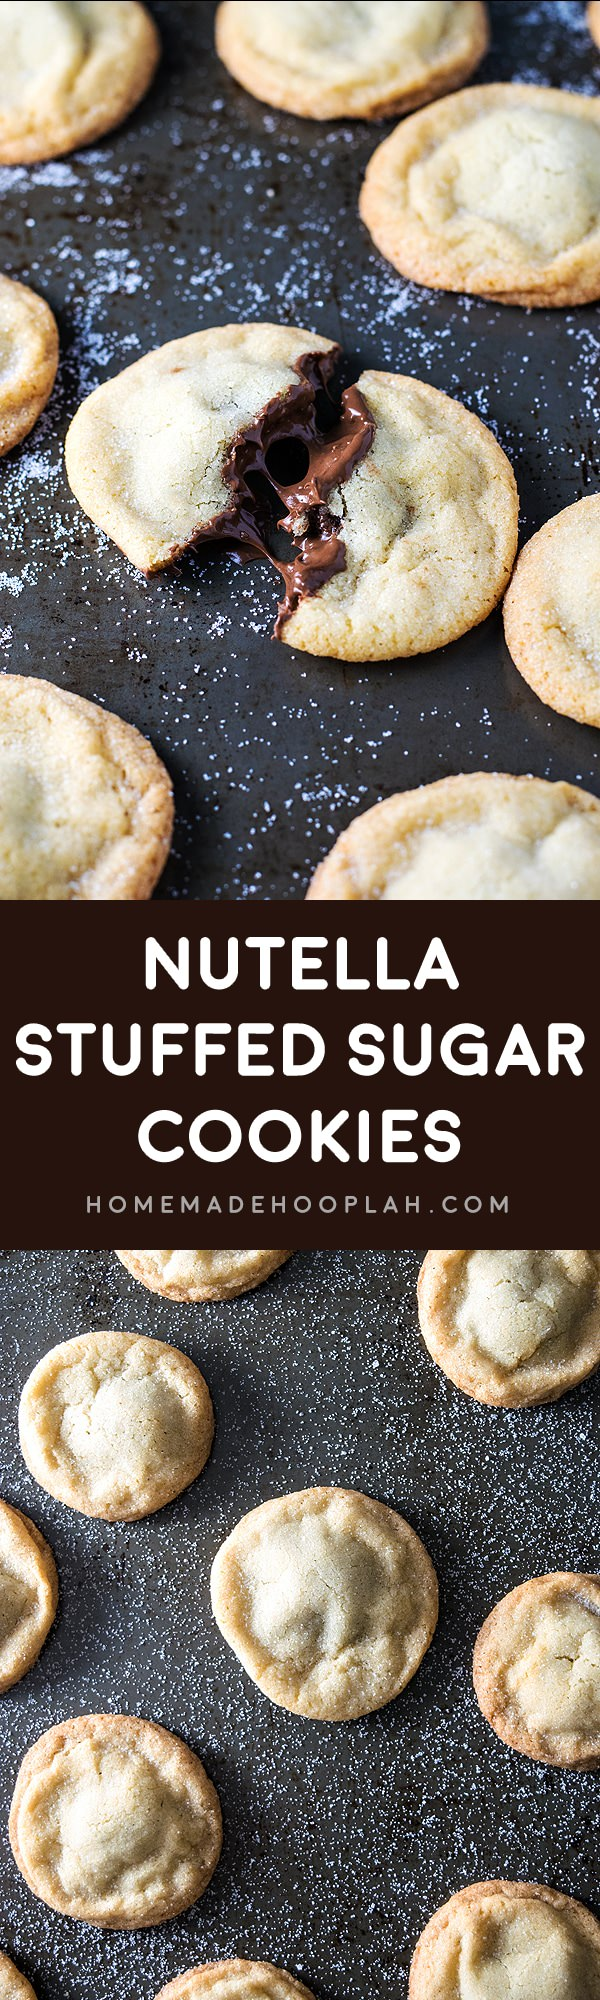 Old Fashioned Creamy Nutella stuffed in soft and chewy sugar cookies. These traditional sugar cookies are so delicious, worth to know the recipe!